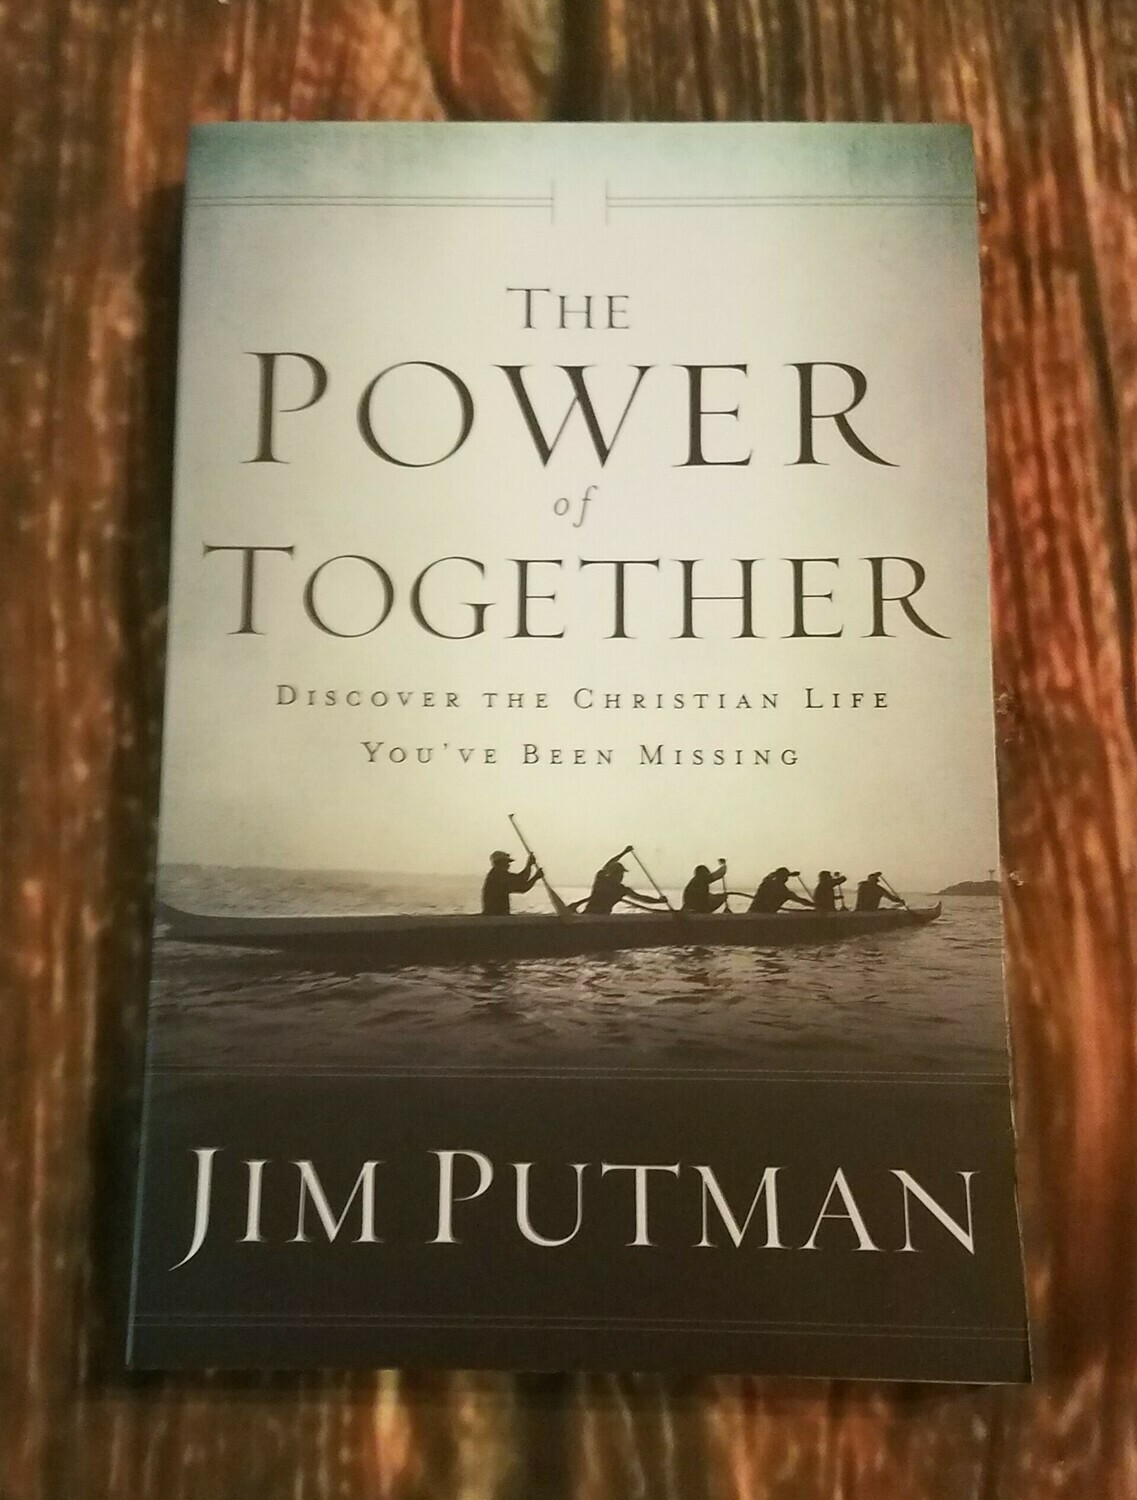 The Power of Together by Jim Putman